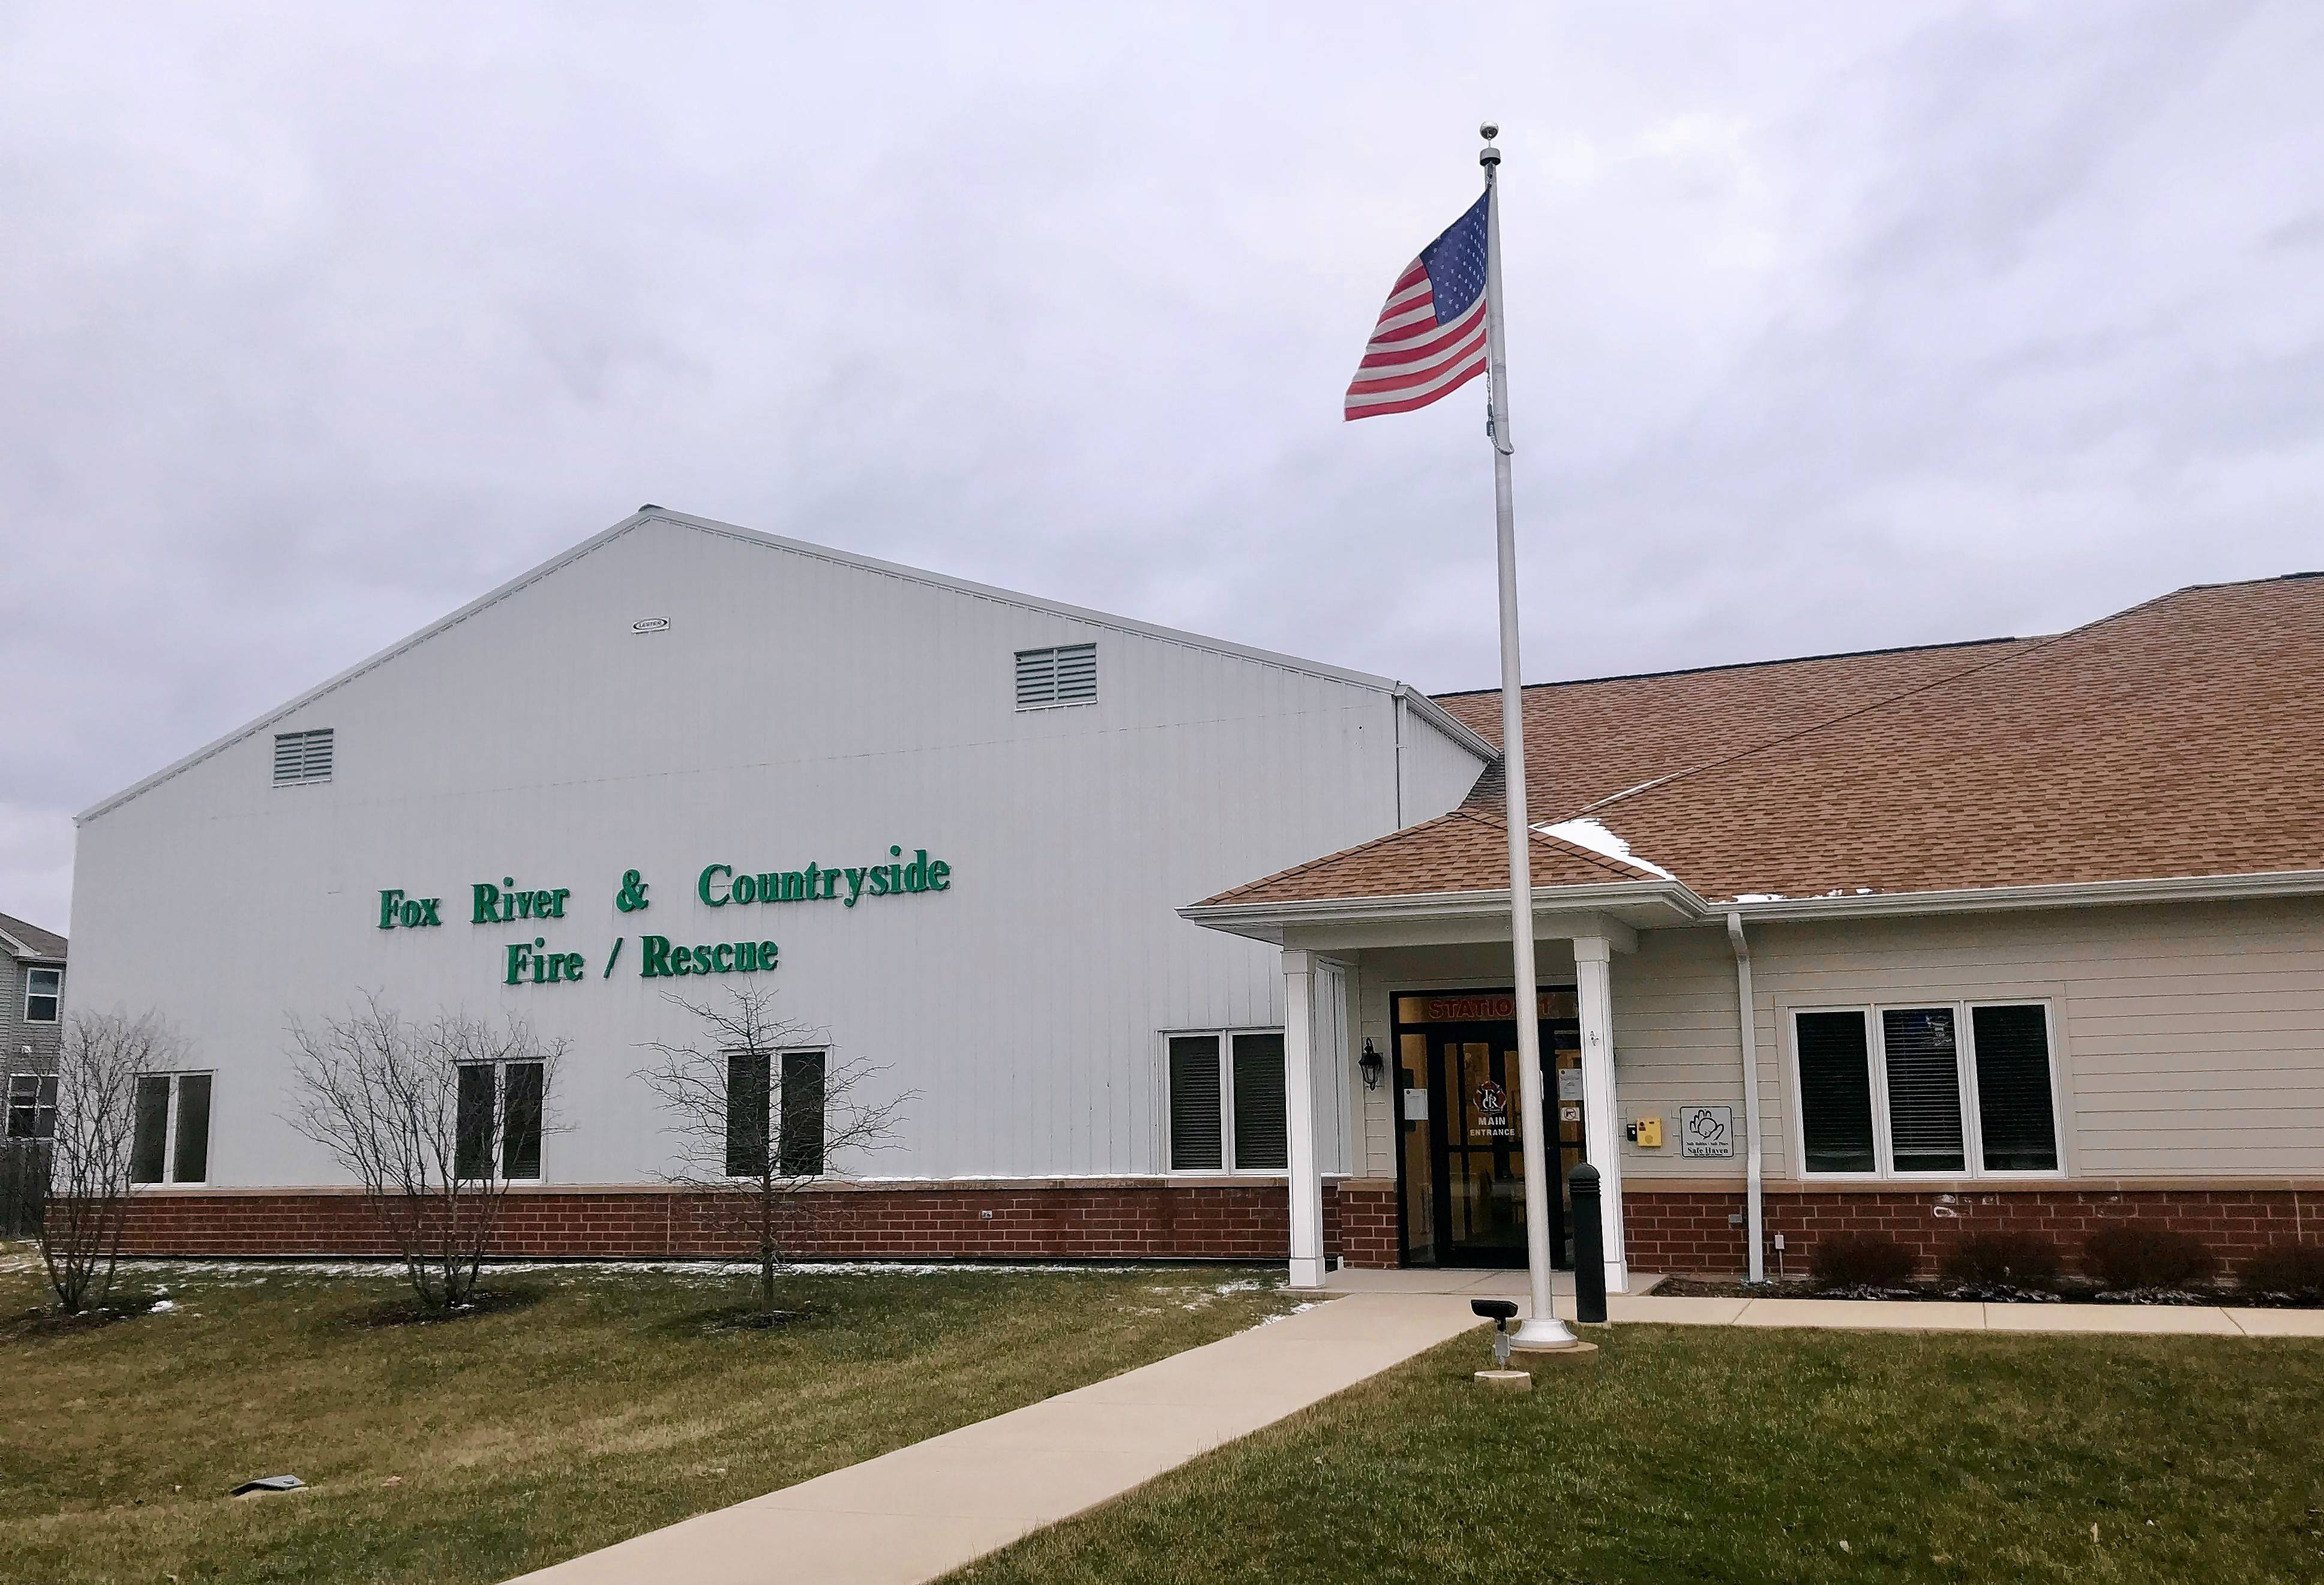 Fox River & Countryside to cut 3 firefighters